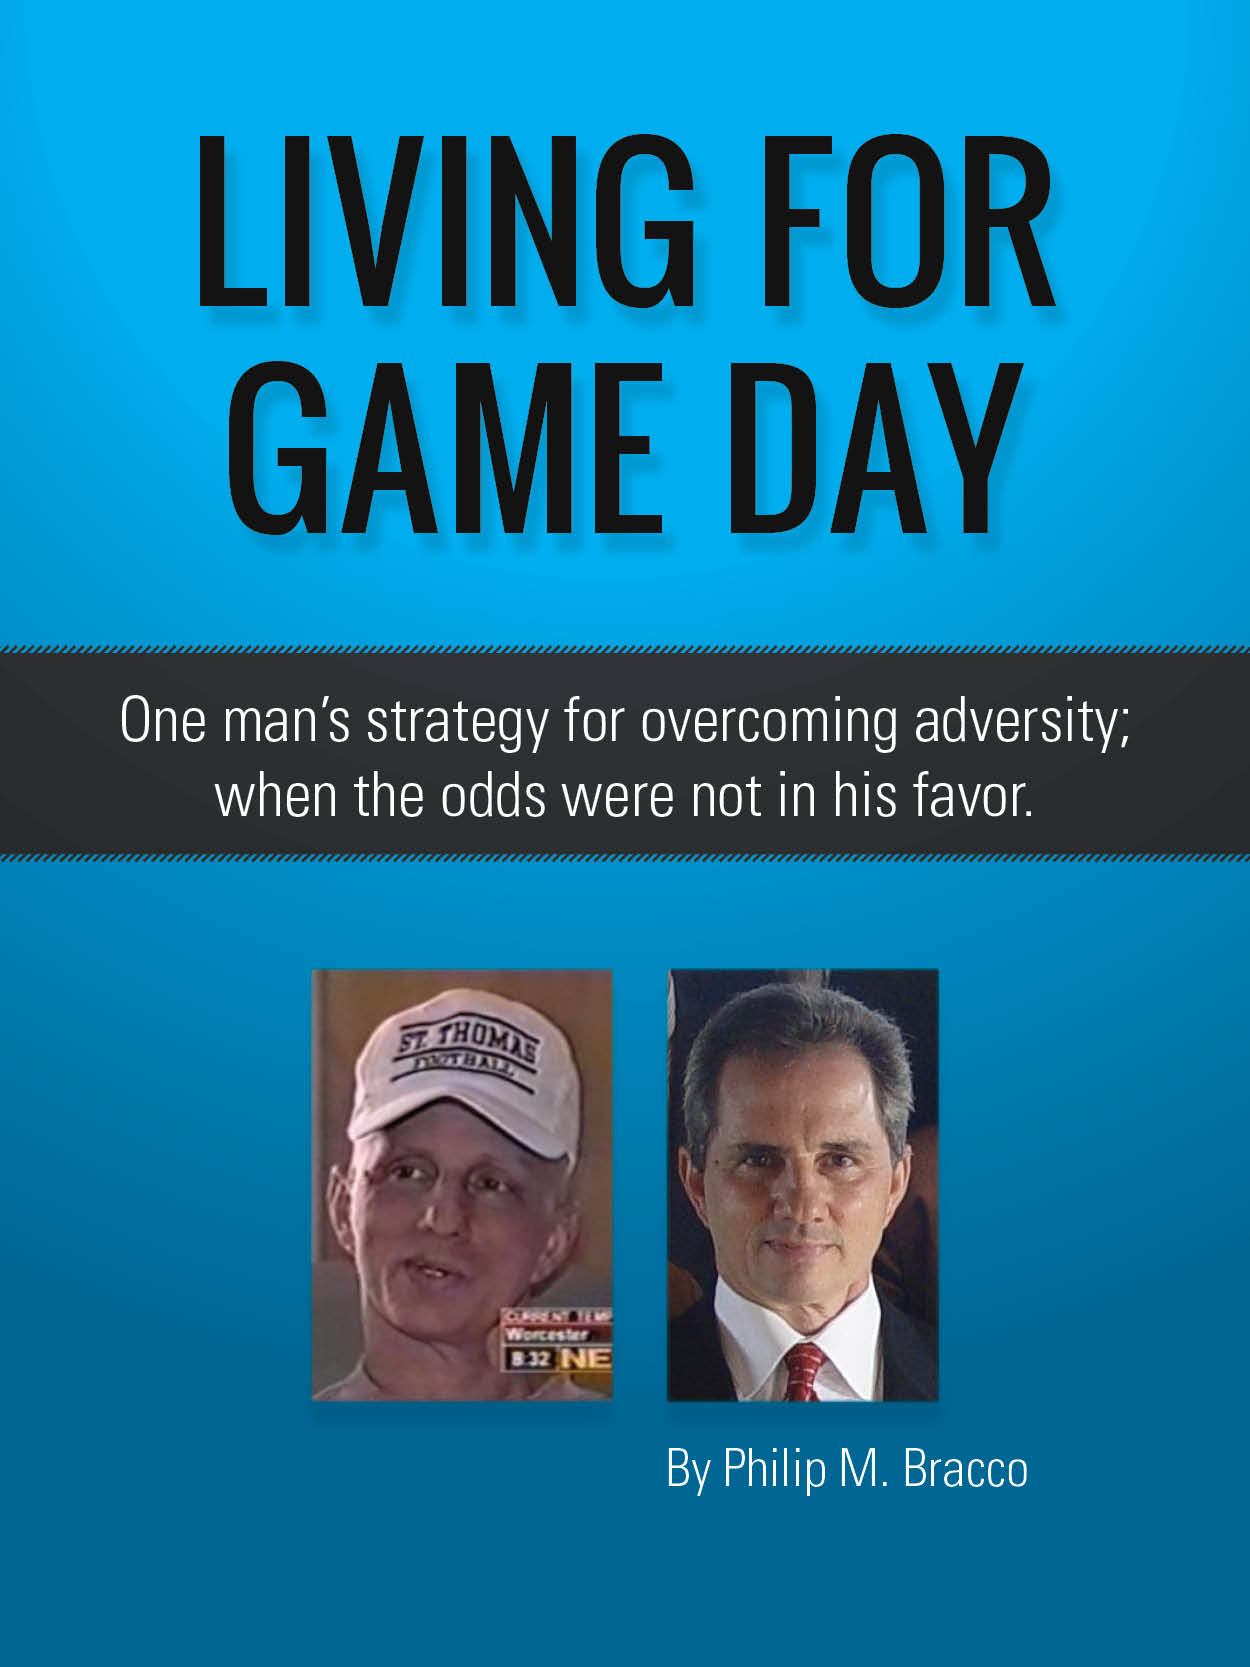 Living for Game Day - by Phil Bracco